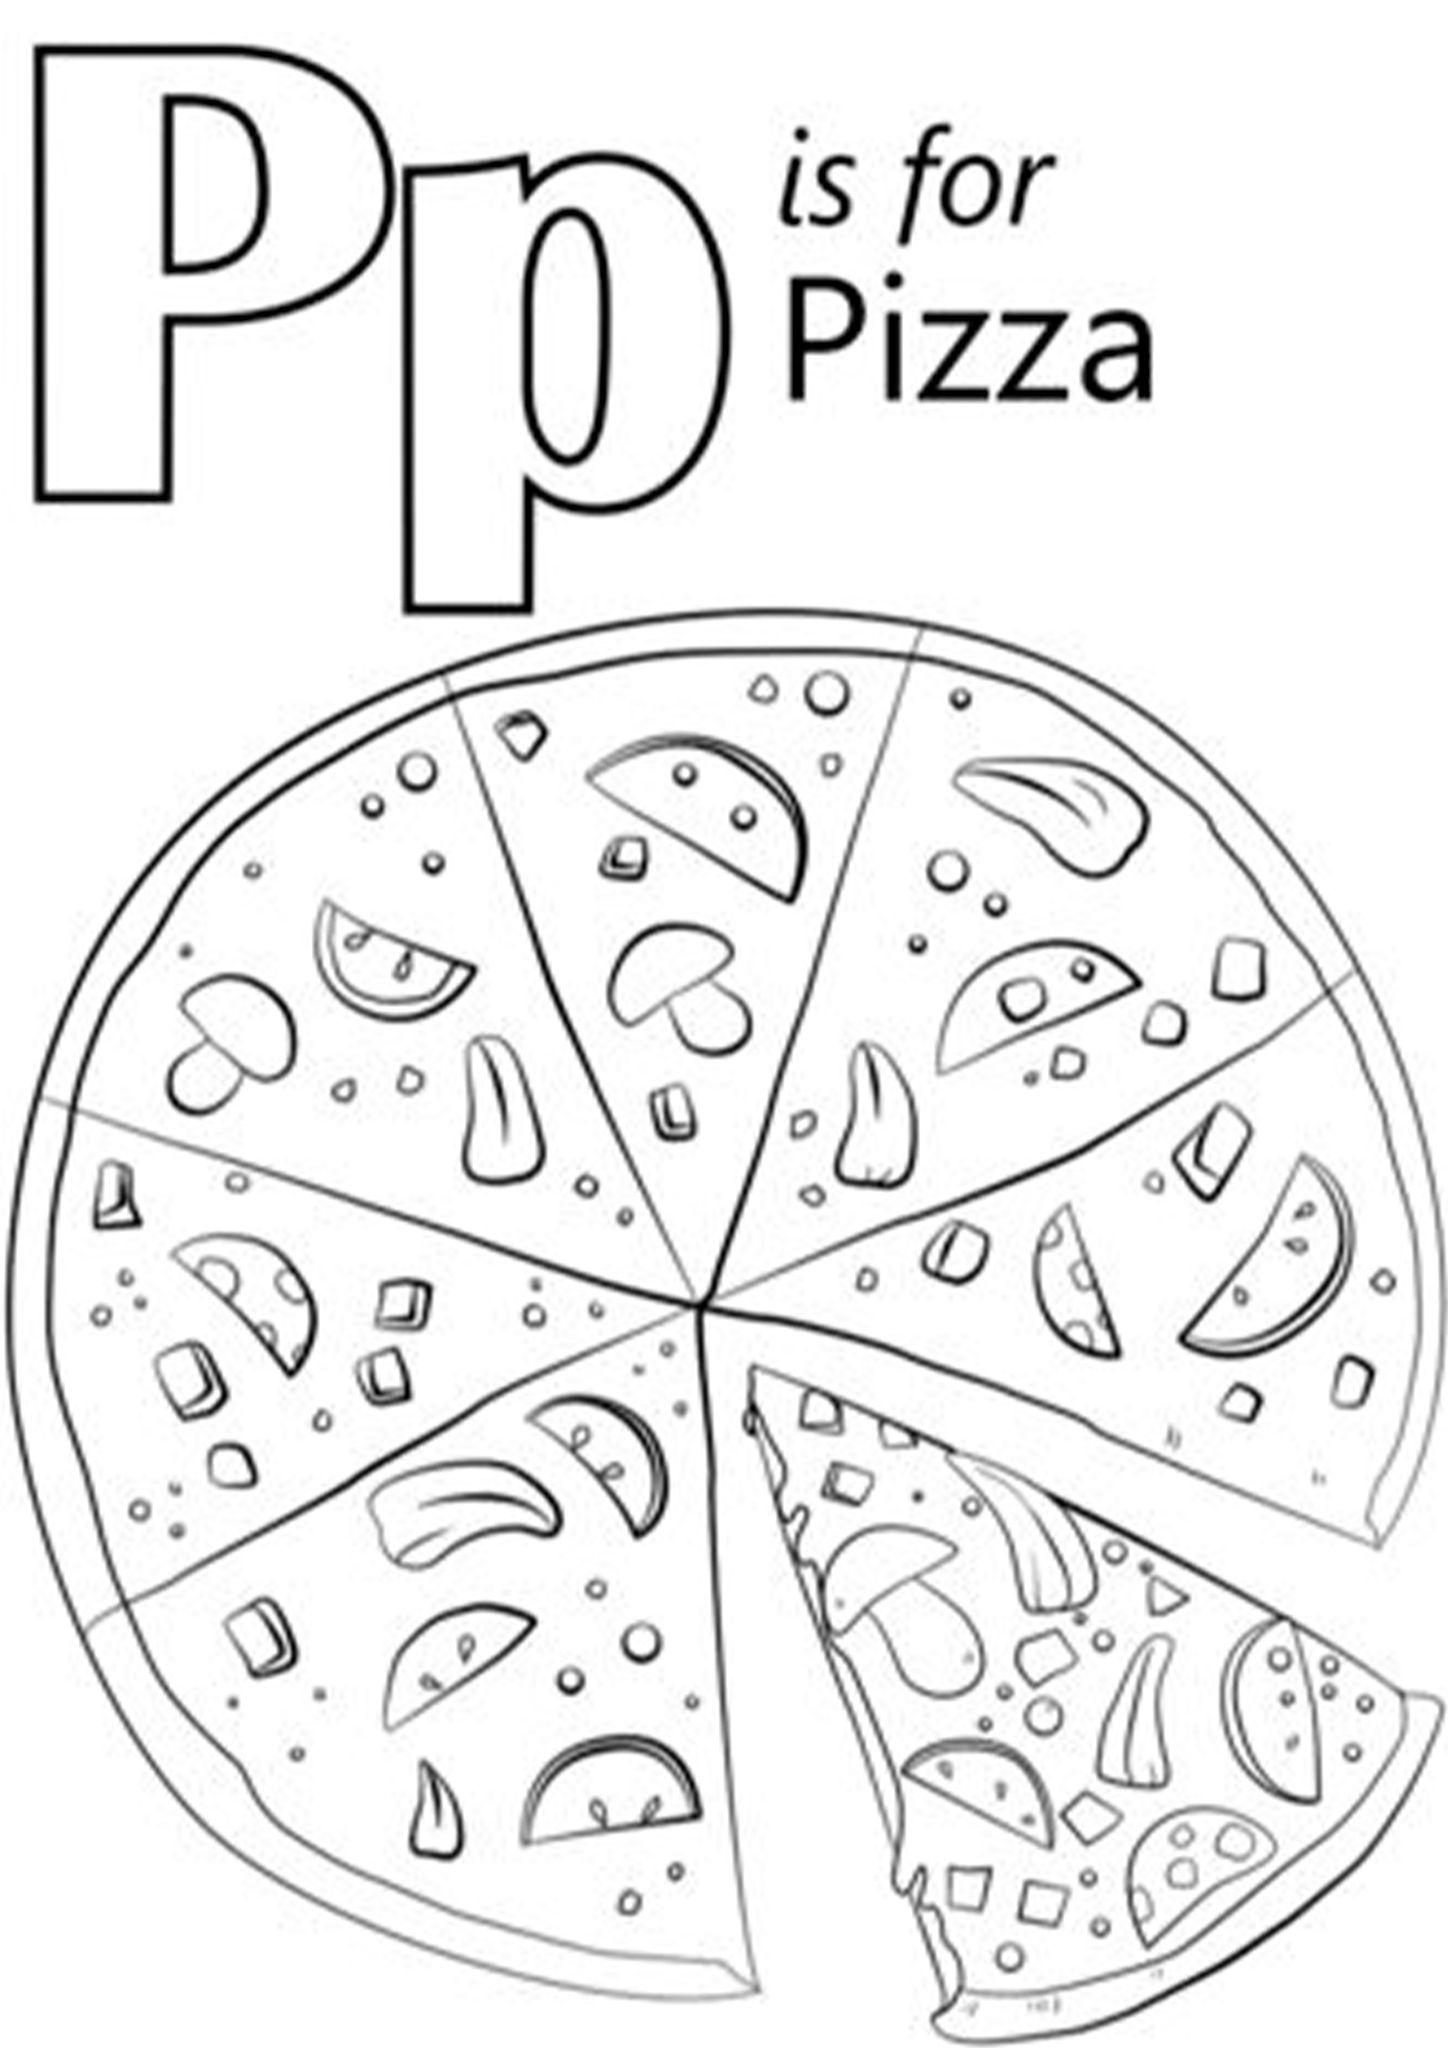 Free Easy To Print Pizza Coloring Pages Alphabet Coloring Pages Alphabet Kindergarten Alphabet Worksheets Kindergarten